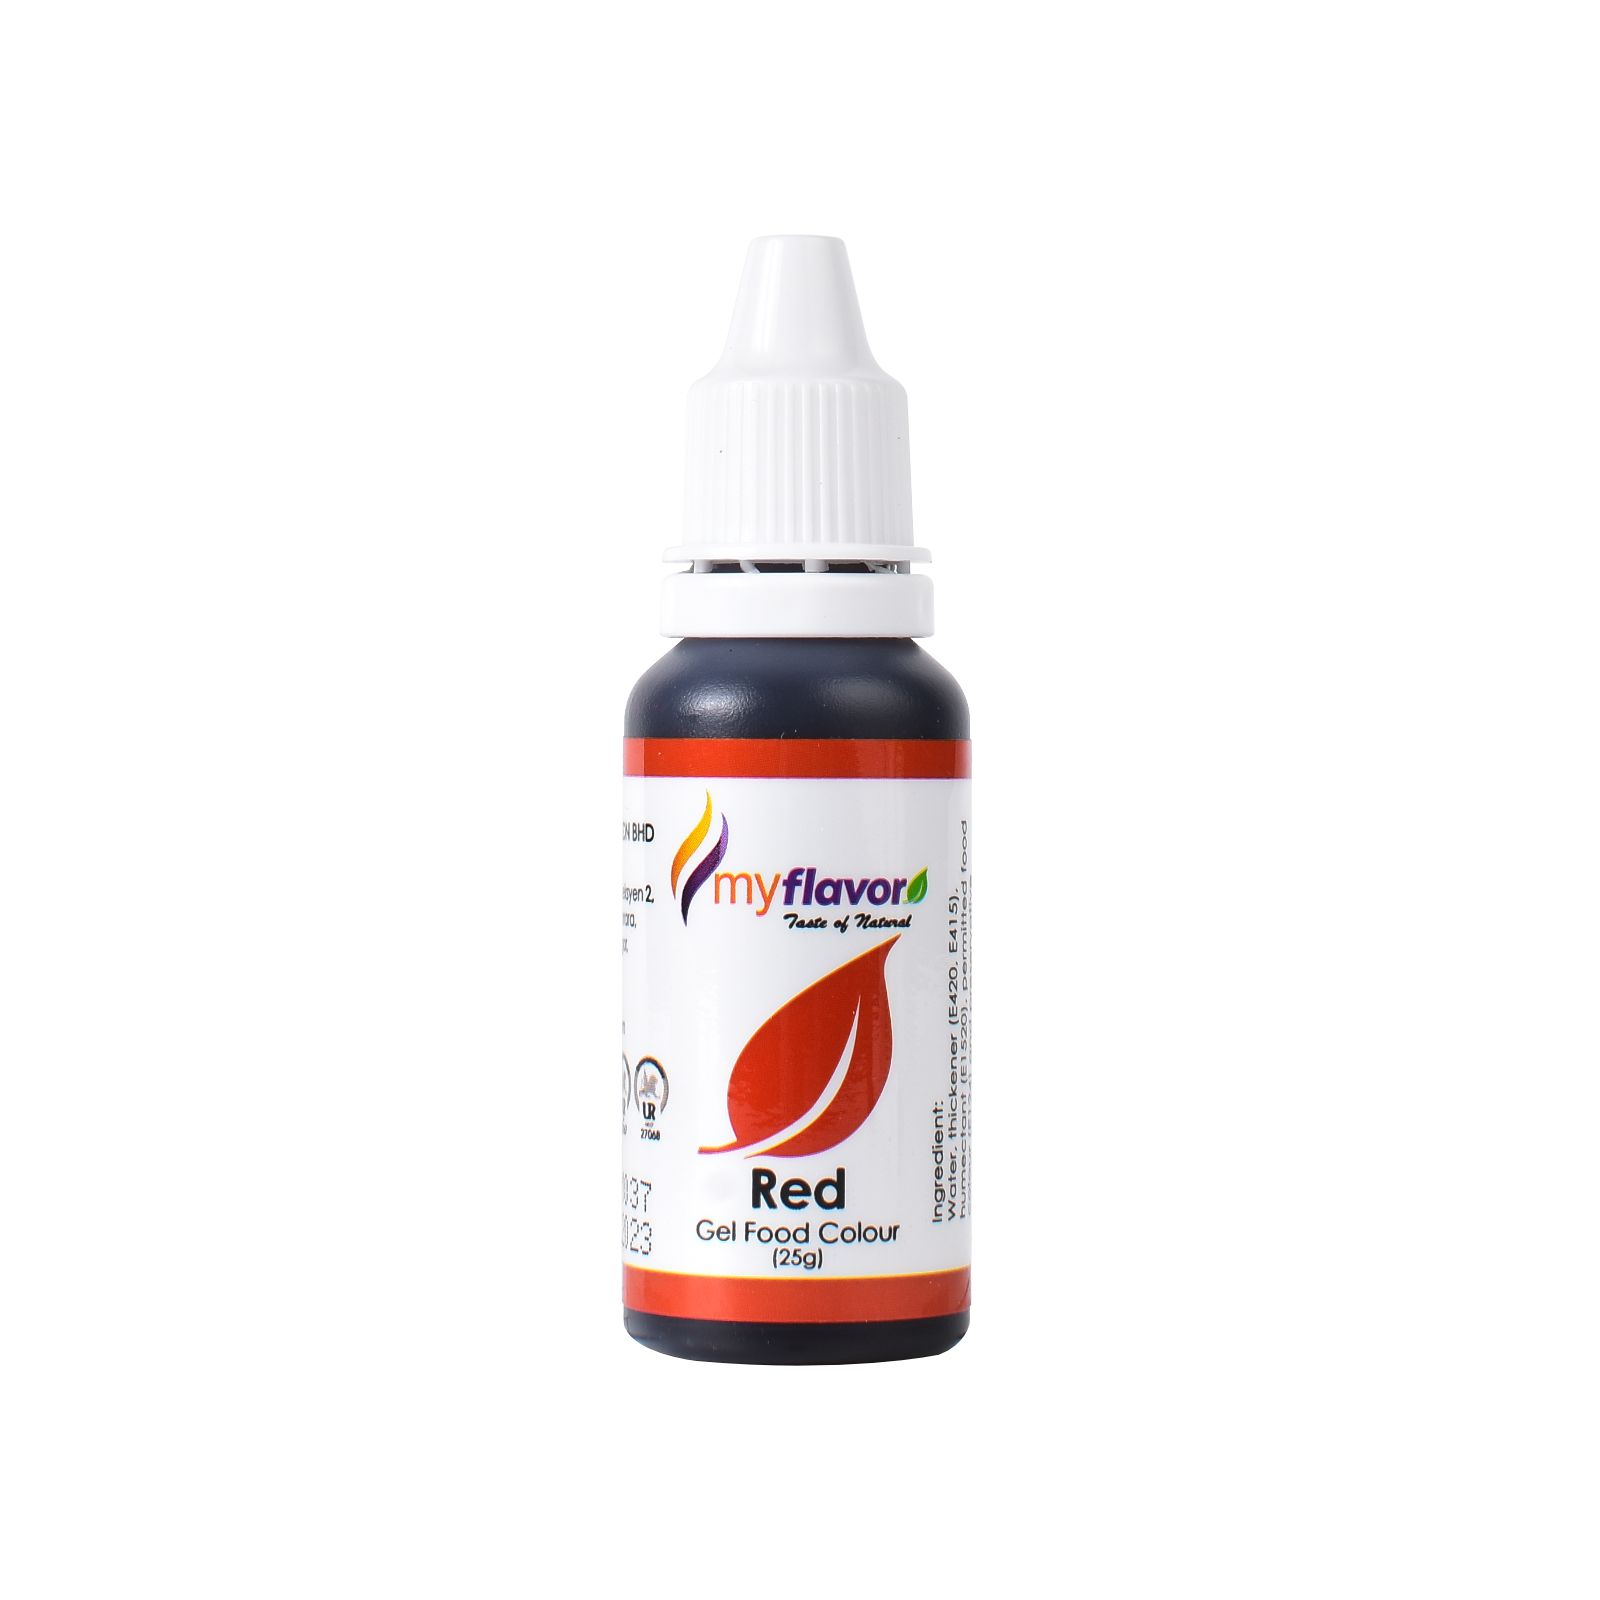 My Flavor Red Gel Food Colour 25g.png